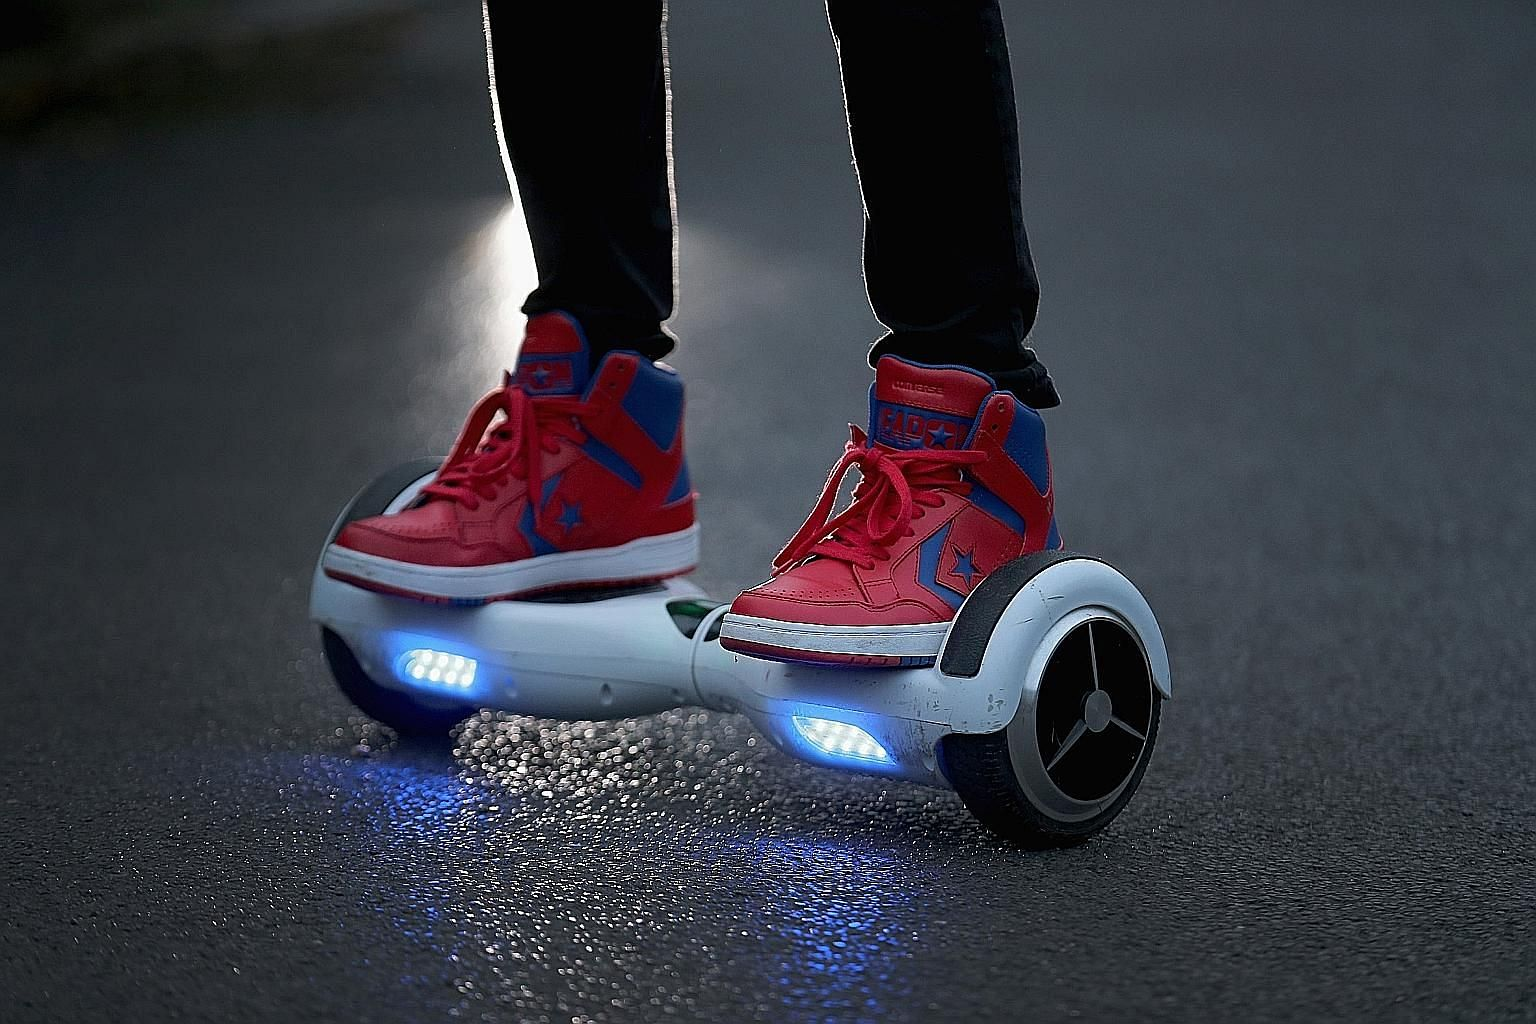 The self-balancing so-called hoverboards are coming under scrutiny, mainly because of their unpredictable lithium-ion batteries.